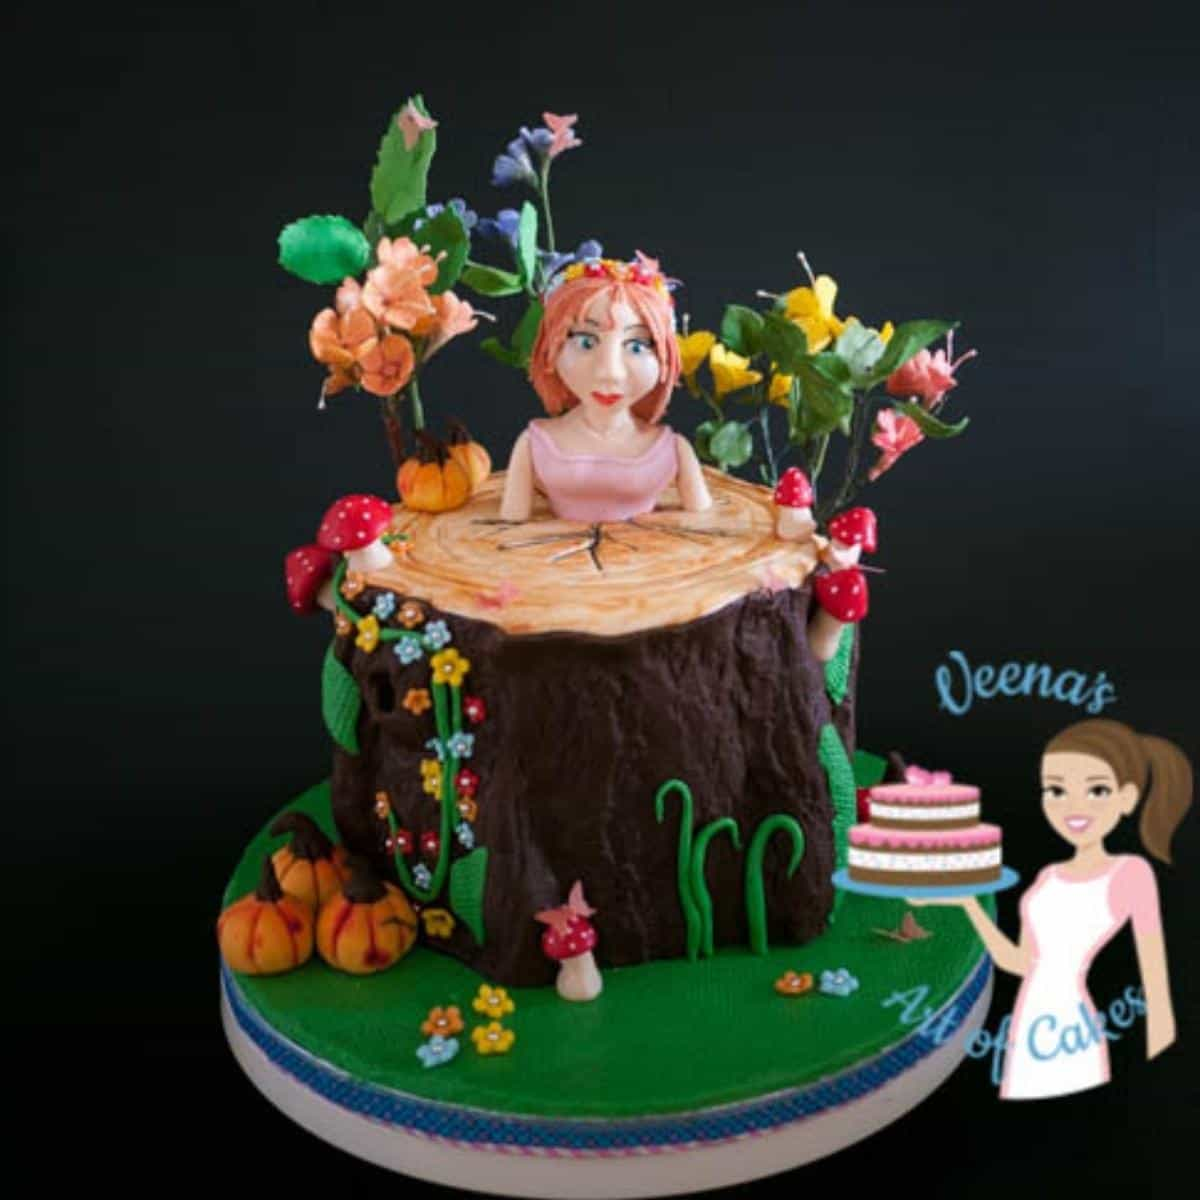 Enchanted forest cake with a girl made from modeling chocolate.